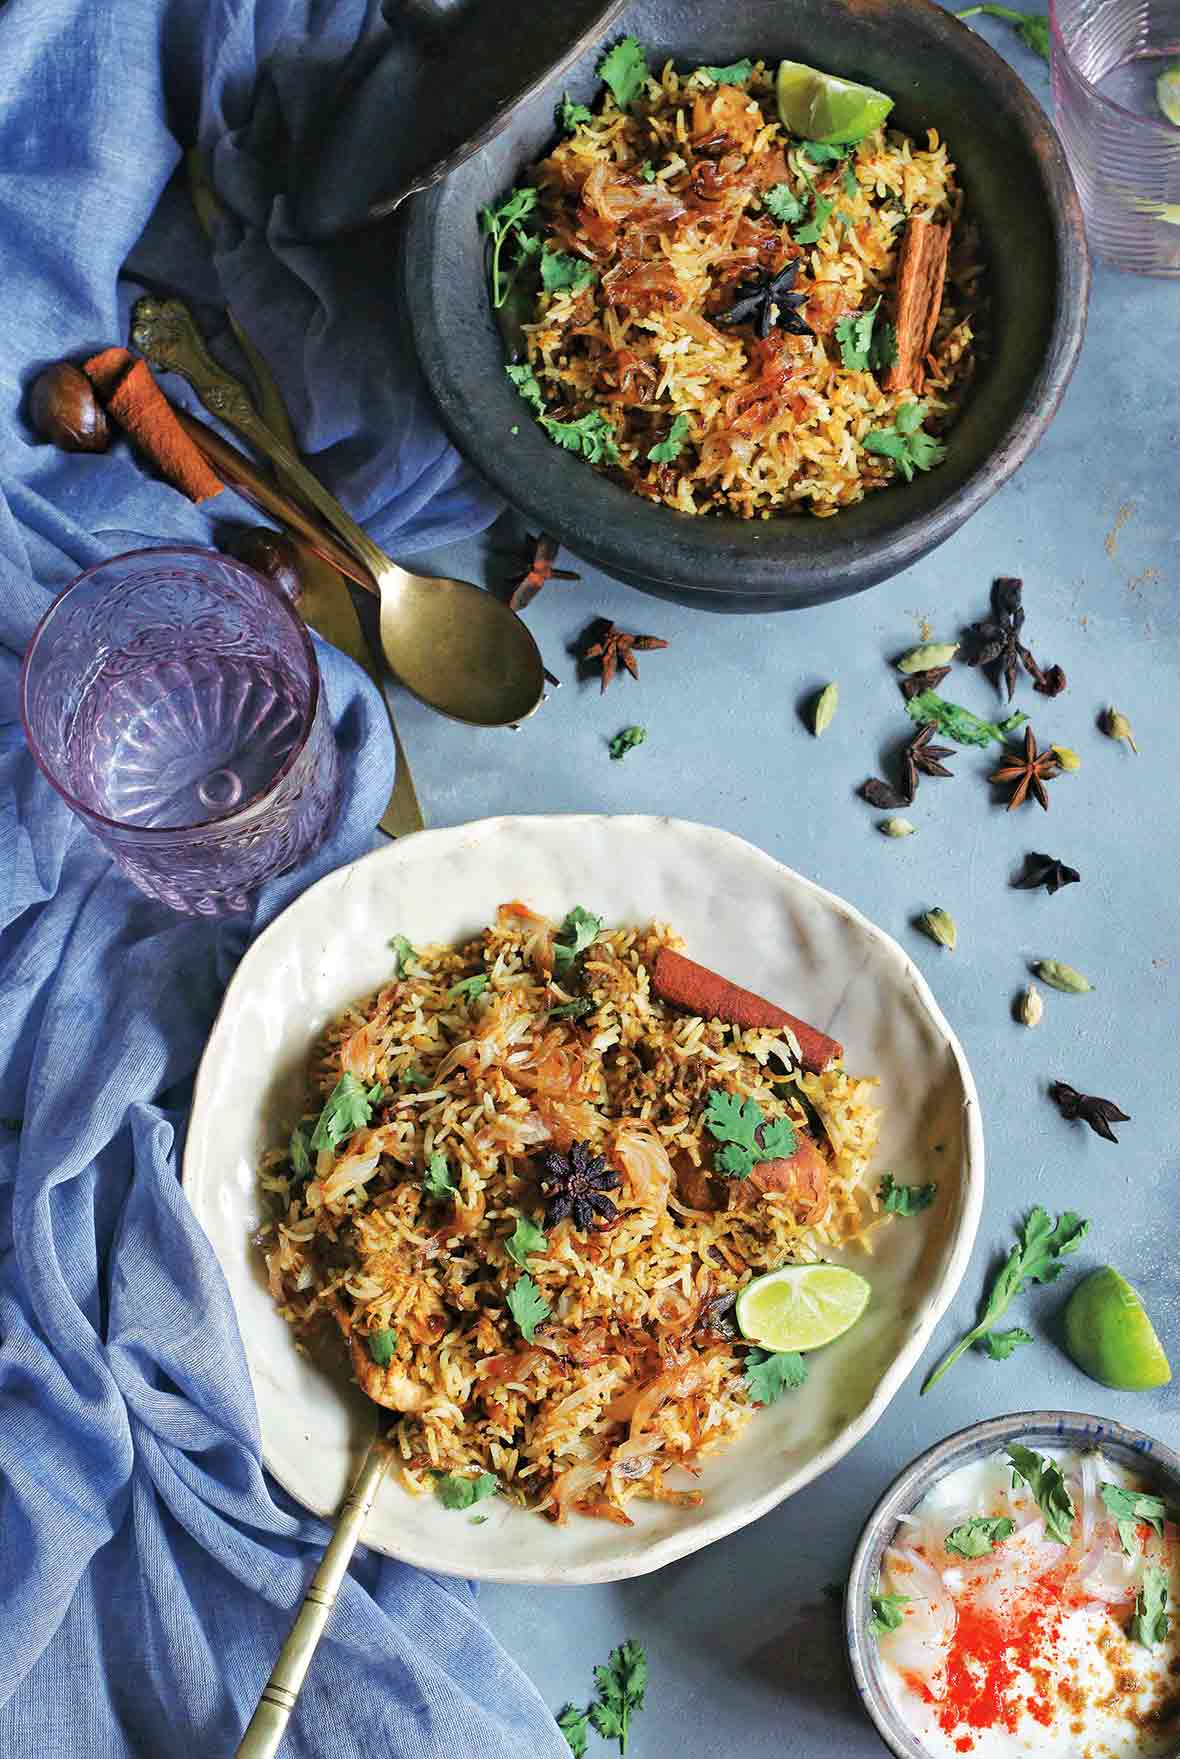 Two bowls filled with chicken biriyani on a blue cloth